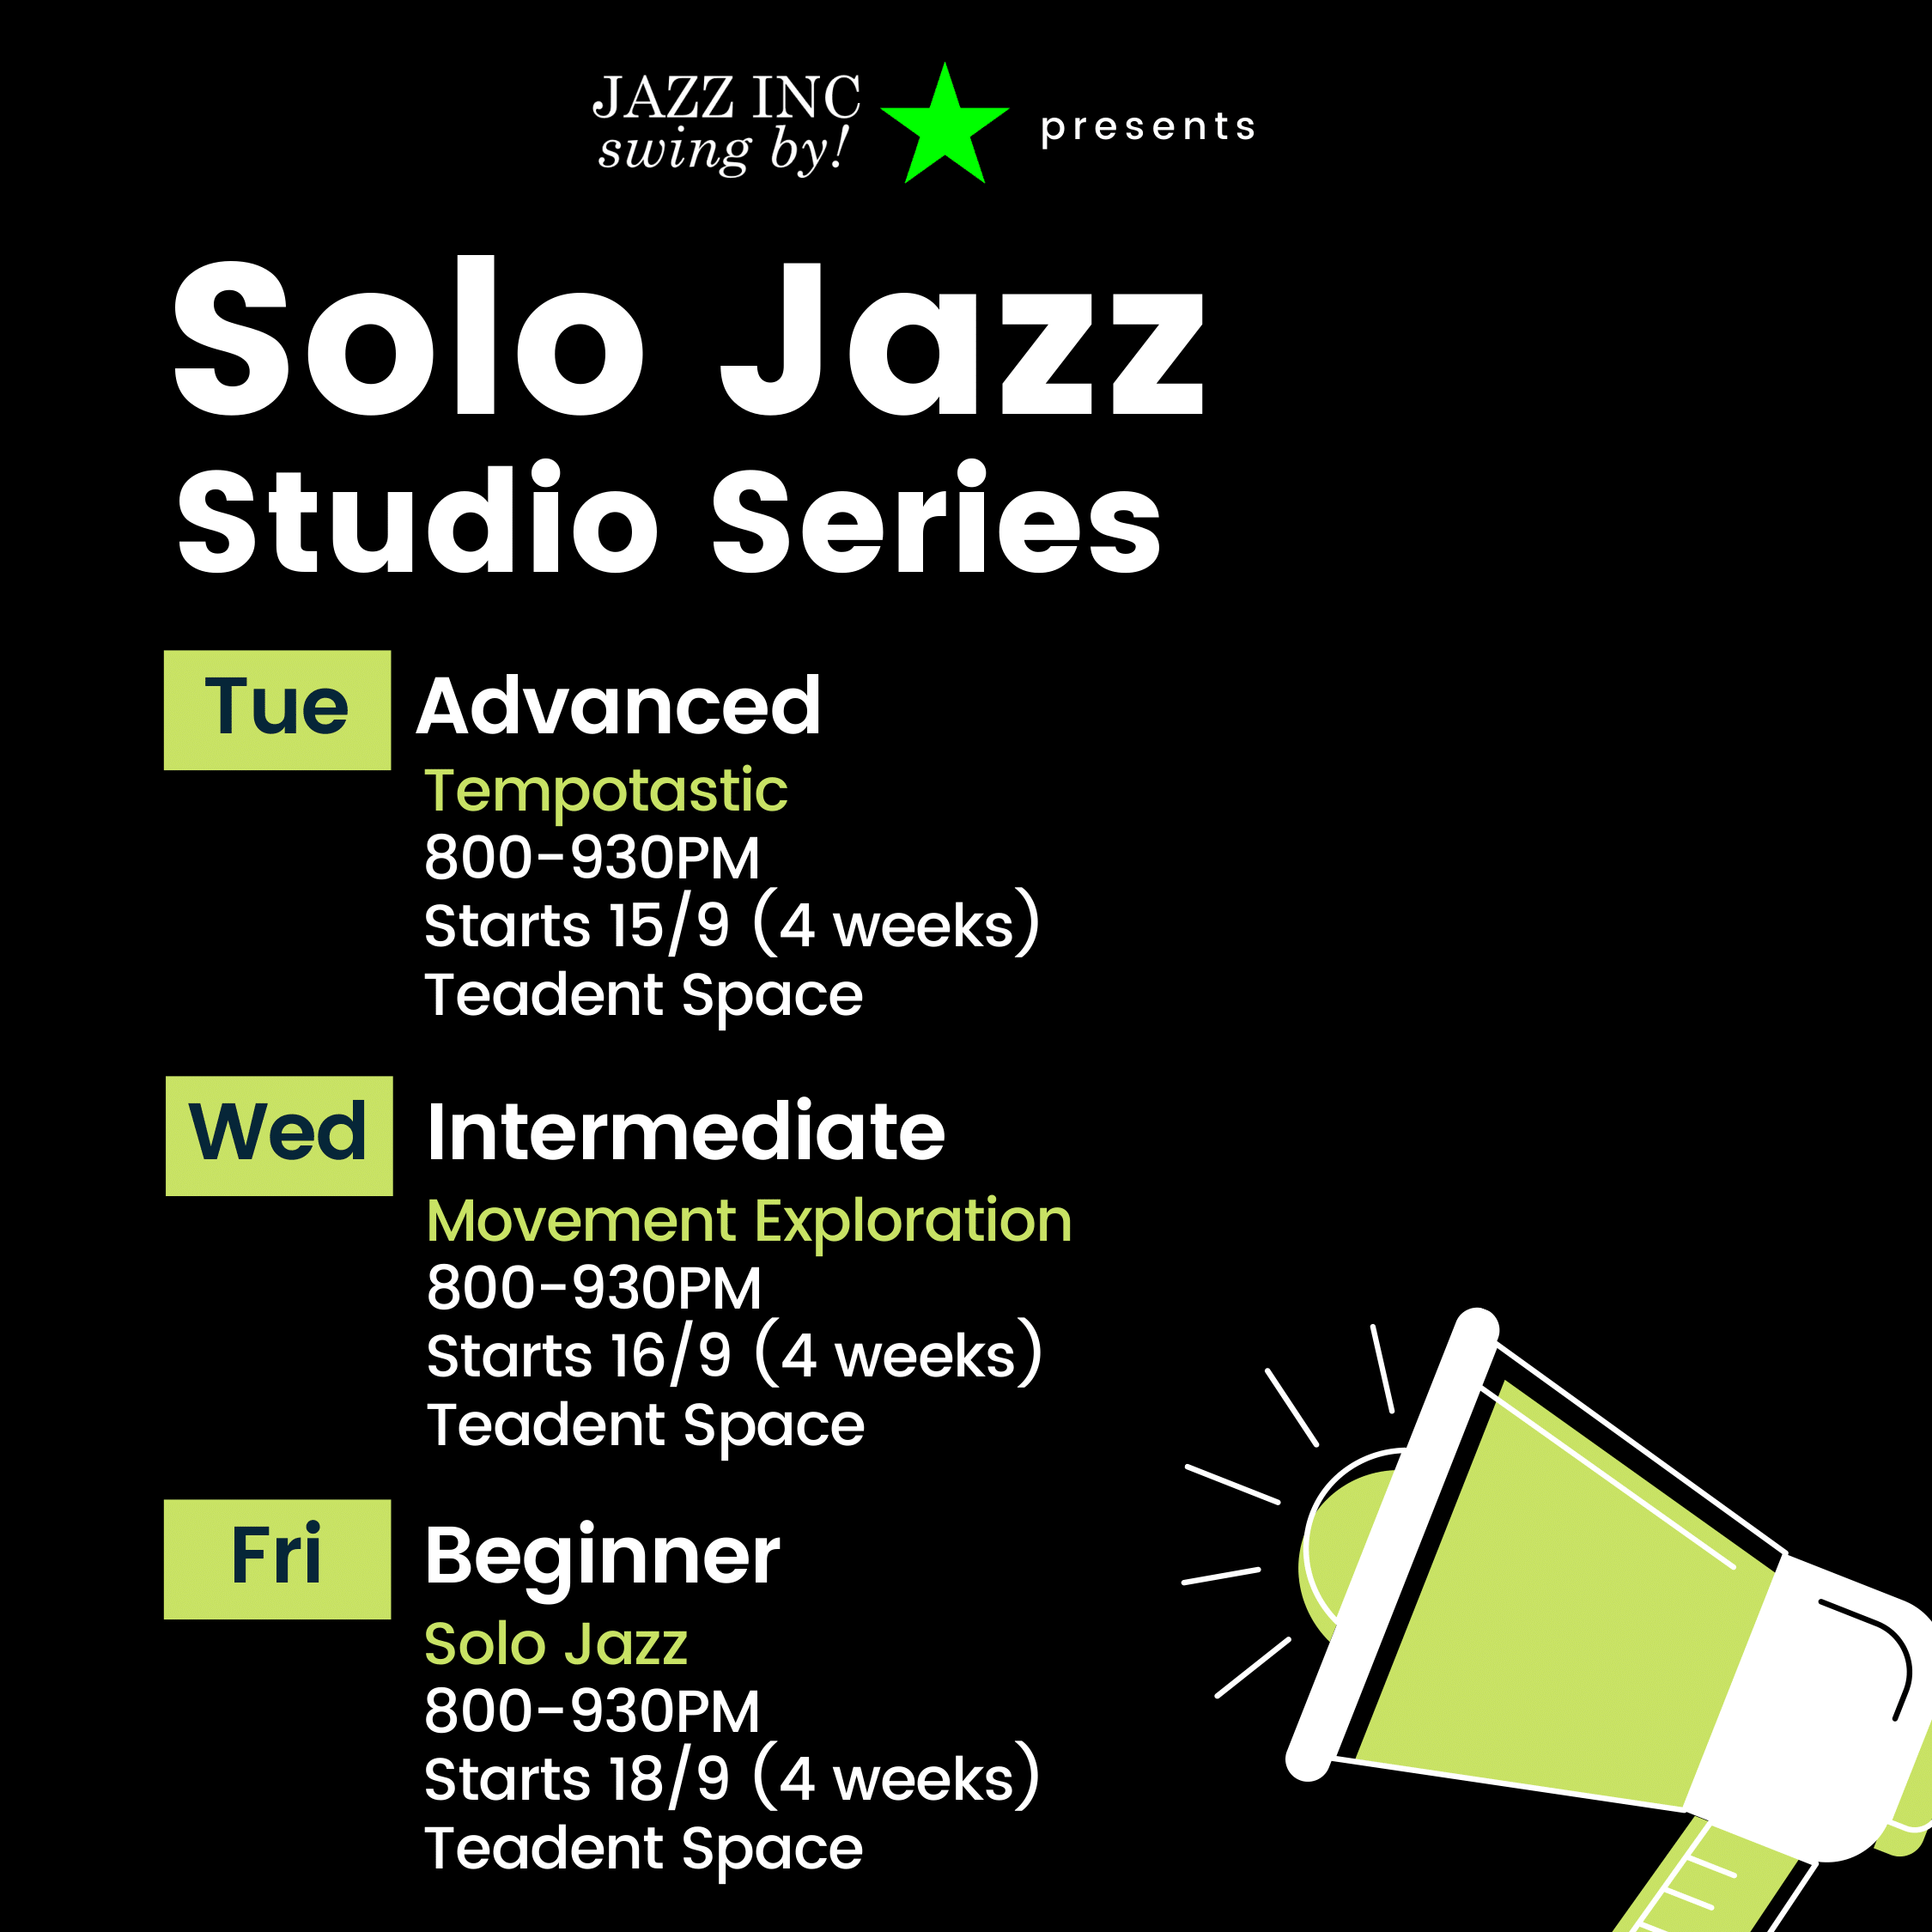 Solo Jazz Studio Series-1